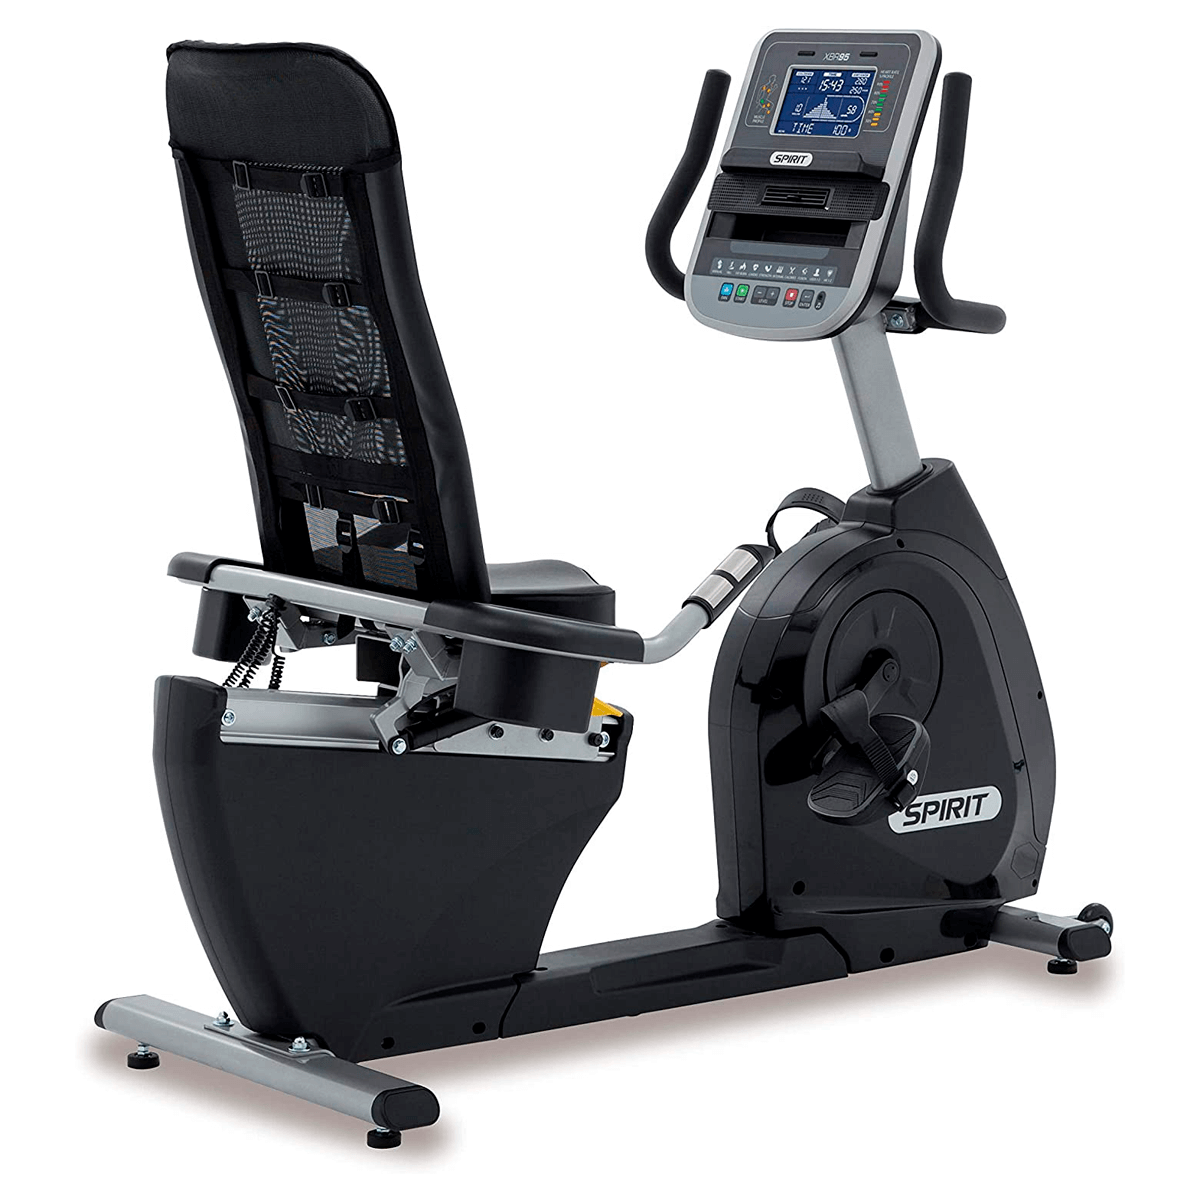 Spirit XBR95 Semi-Recumbent Bike